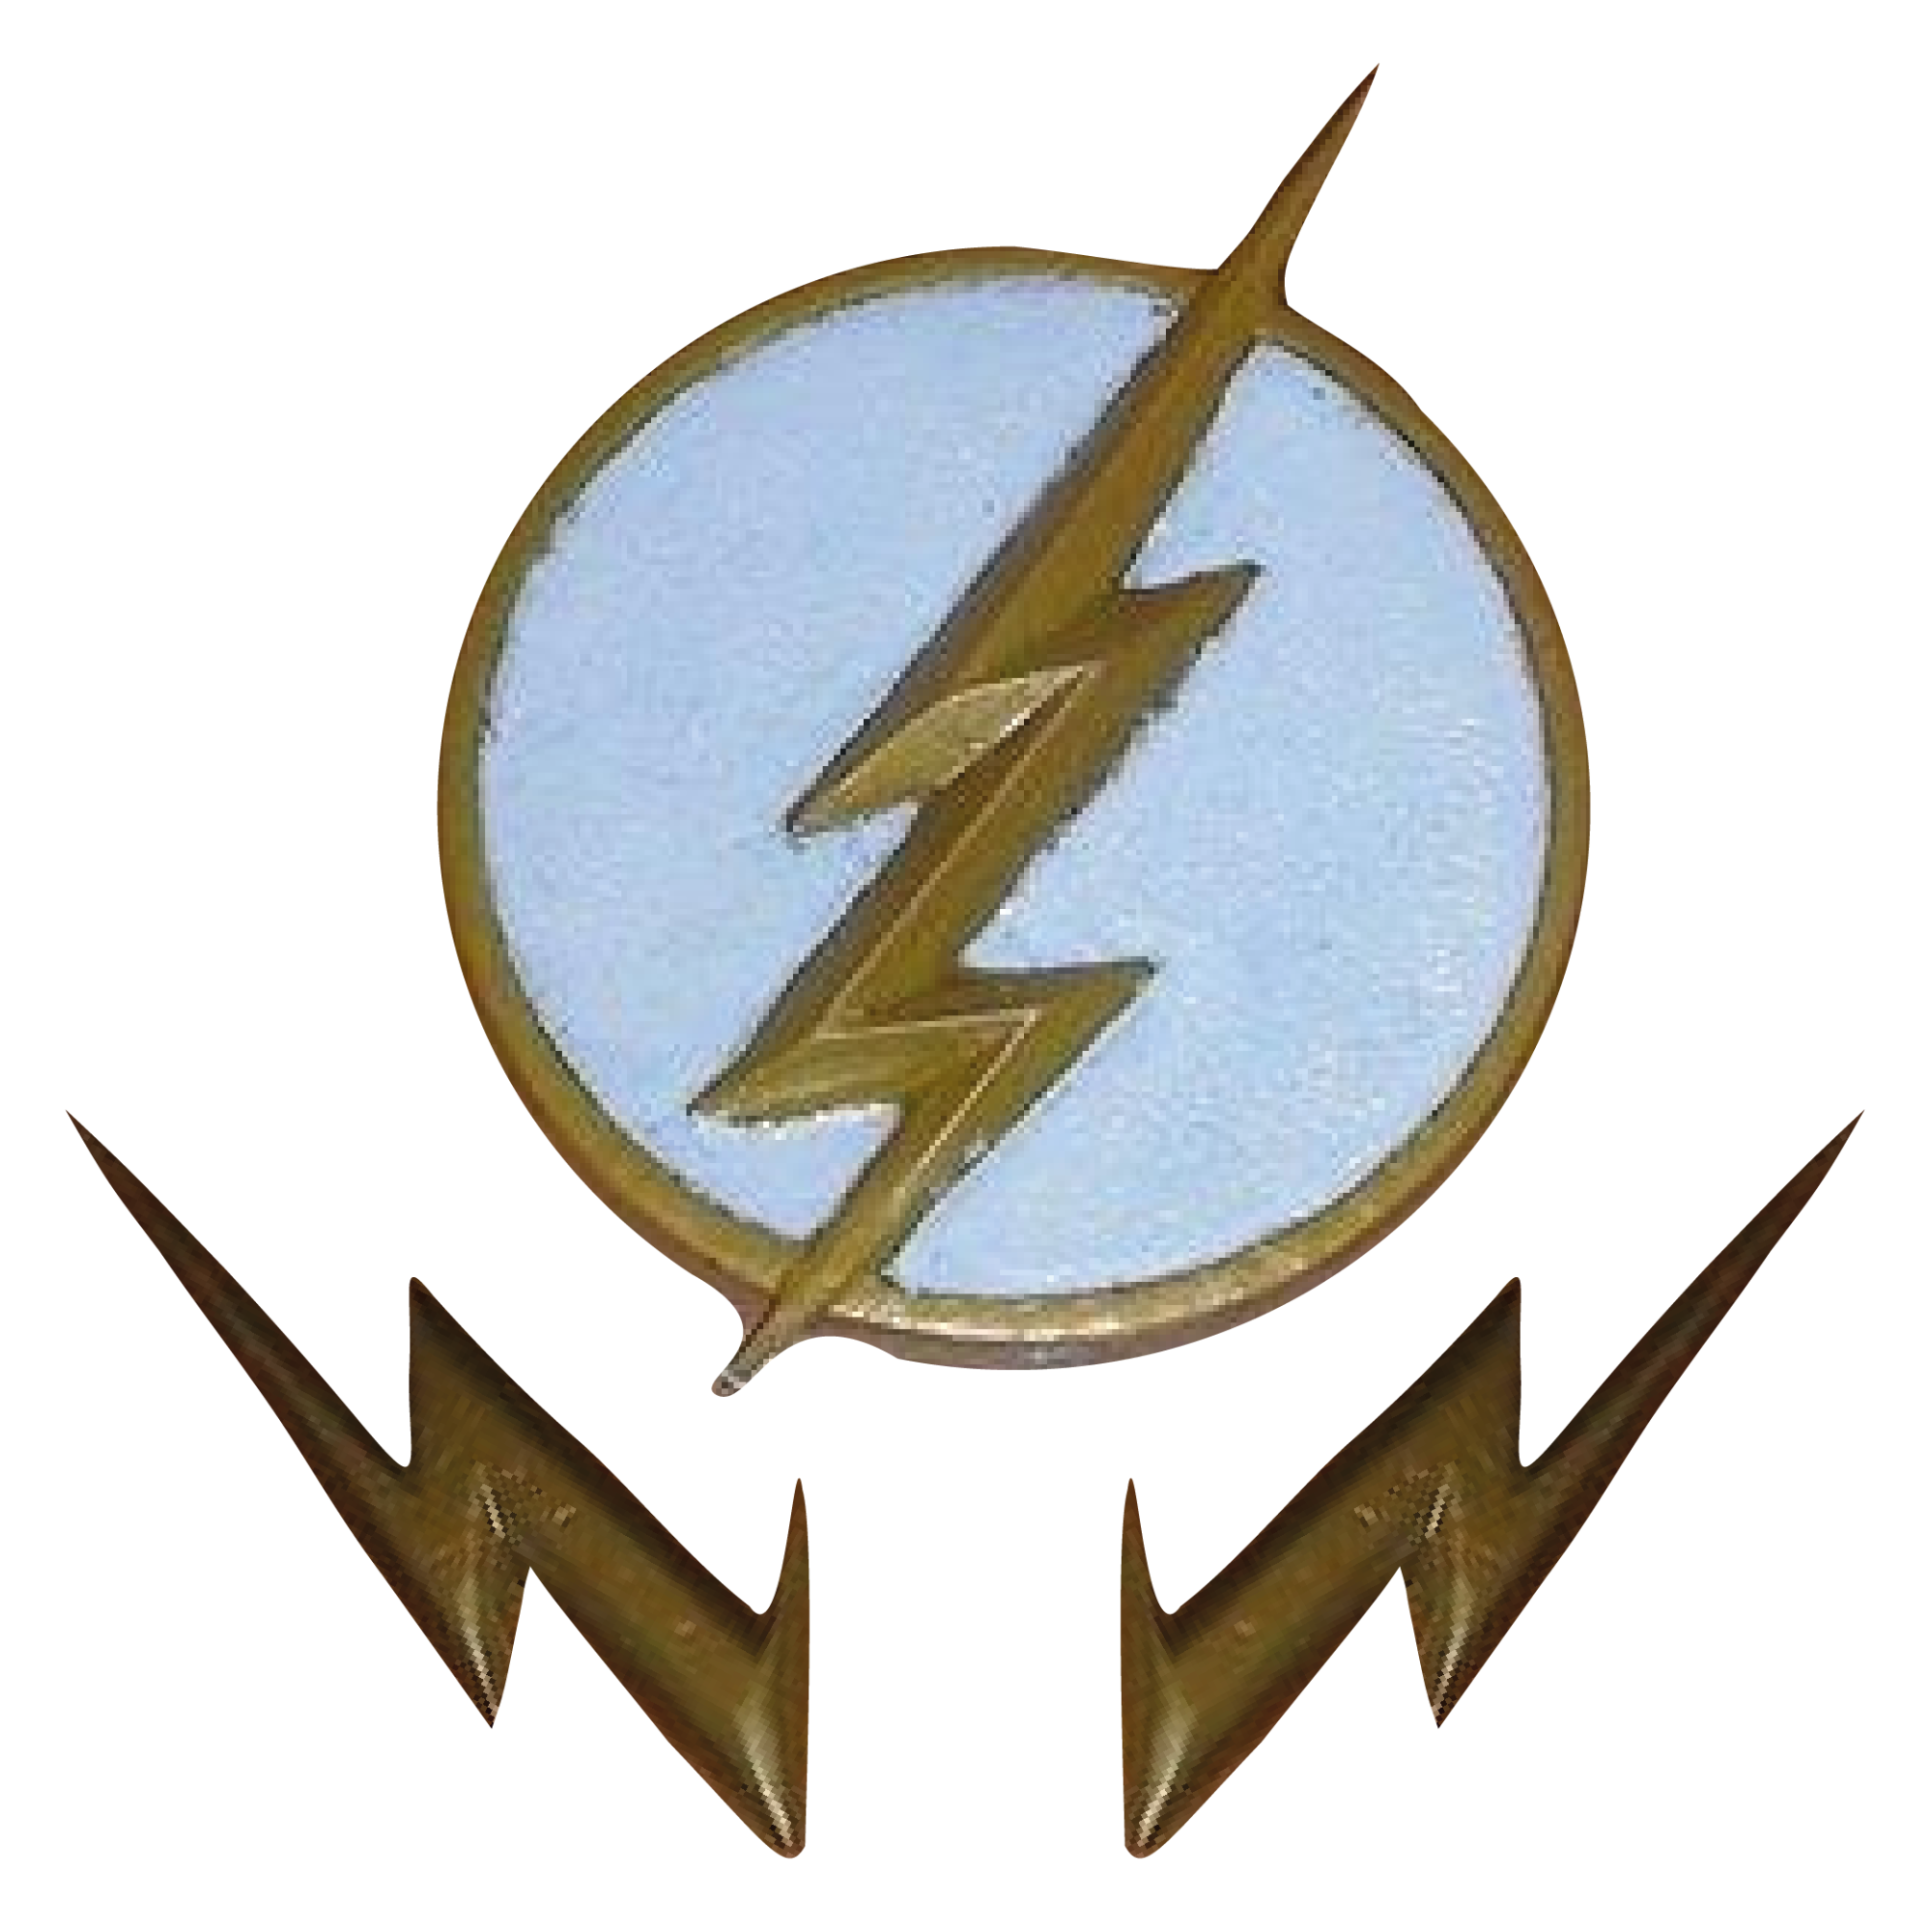 The Flash Badge & Eblem